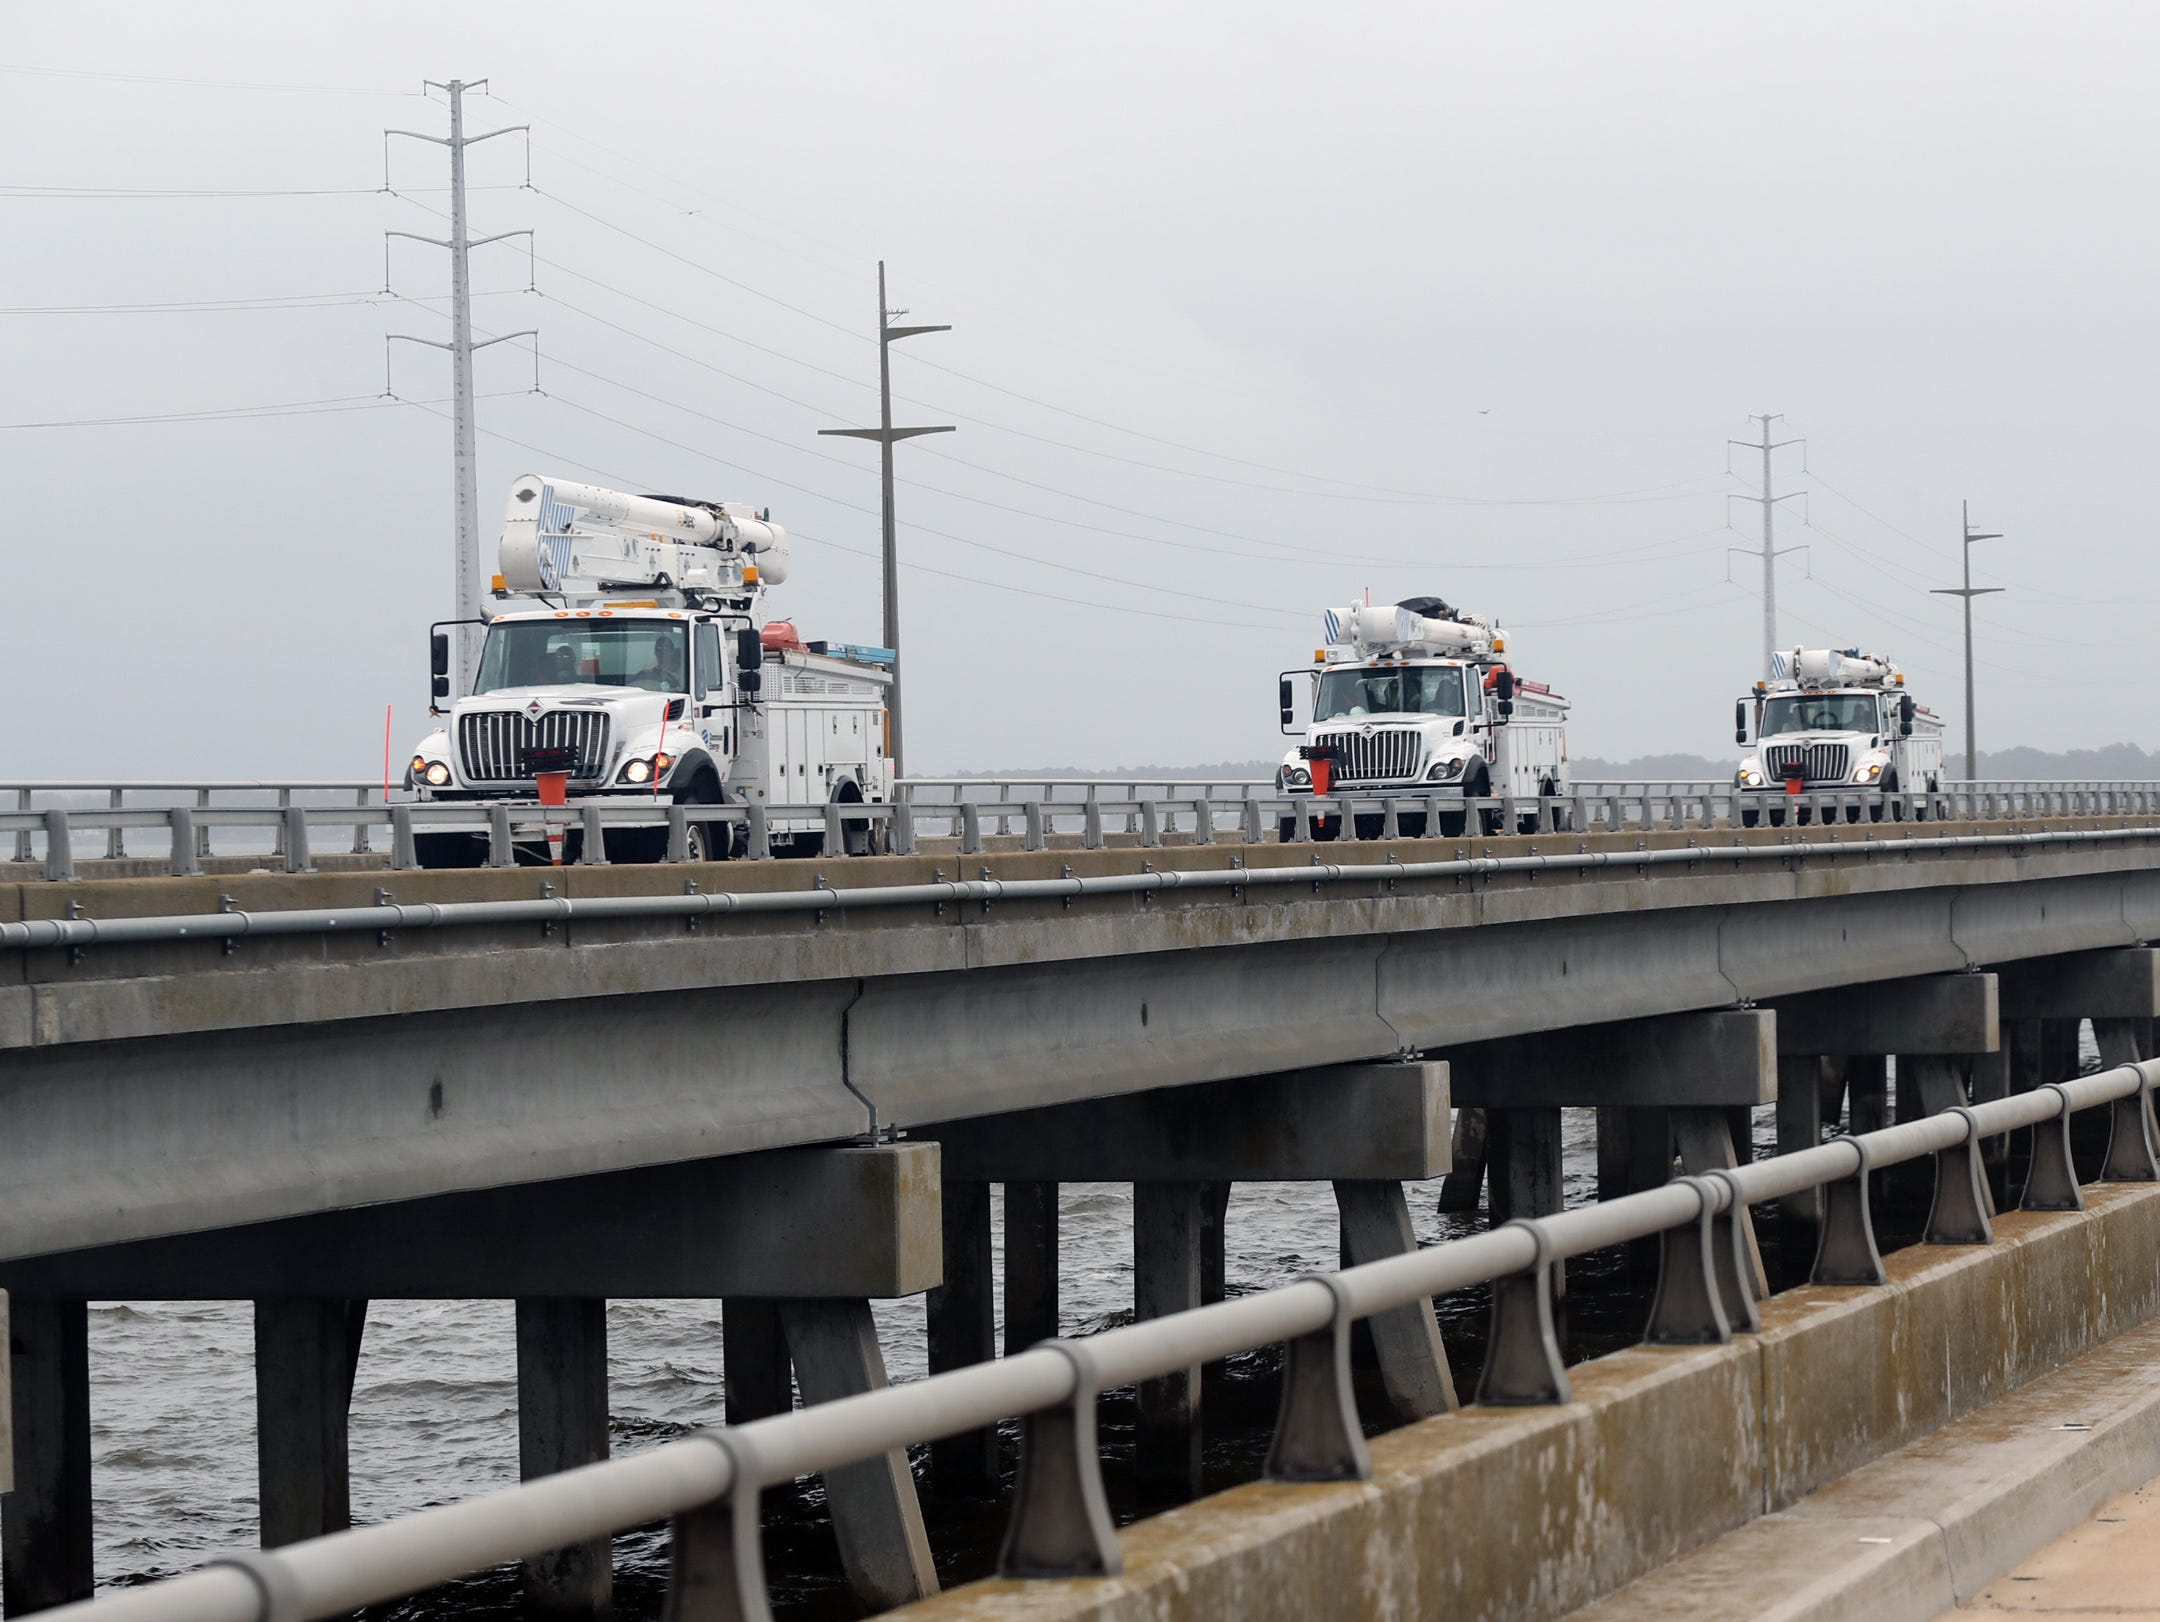 September 14, 2018; Kill Devil Hills, NC, USA; Utility trucks cross the causeway on the N. Croatan Highway from Kitty Hawk, North Carolina on Friday, September 14, 2018.